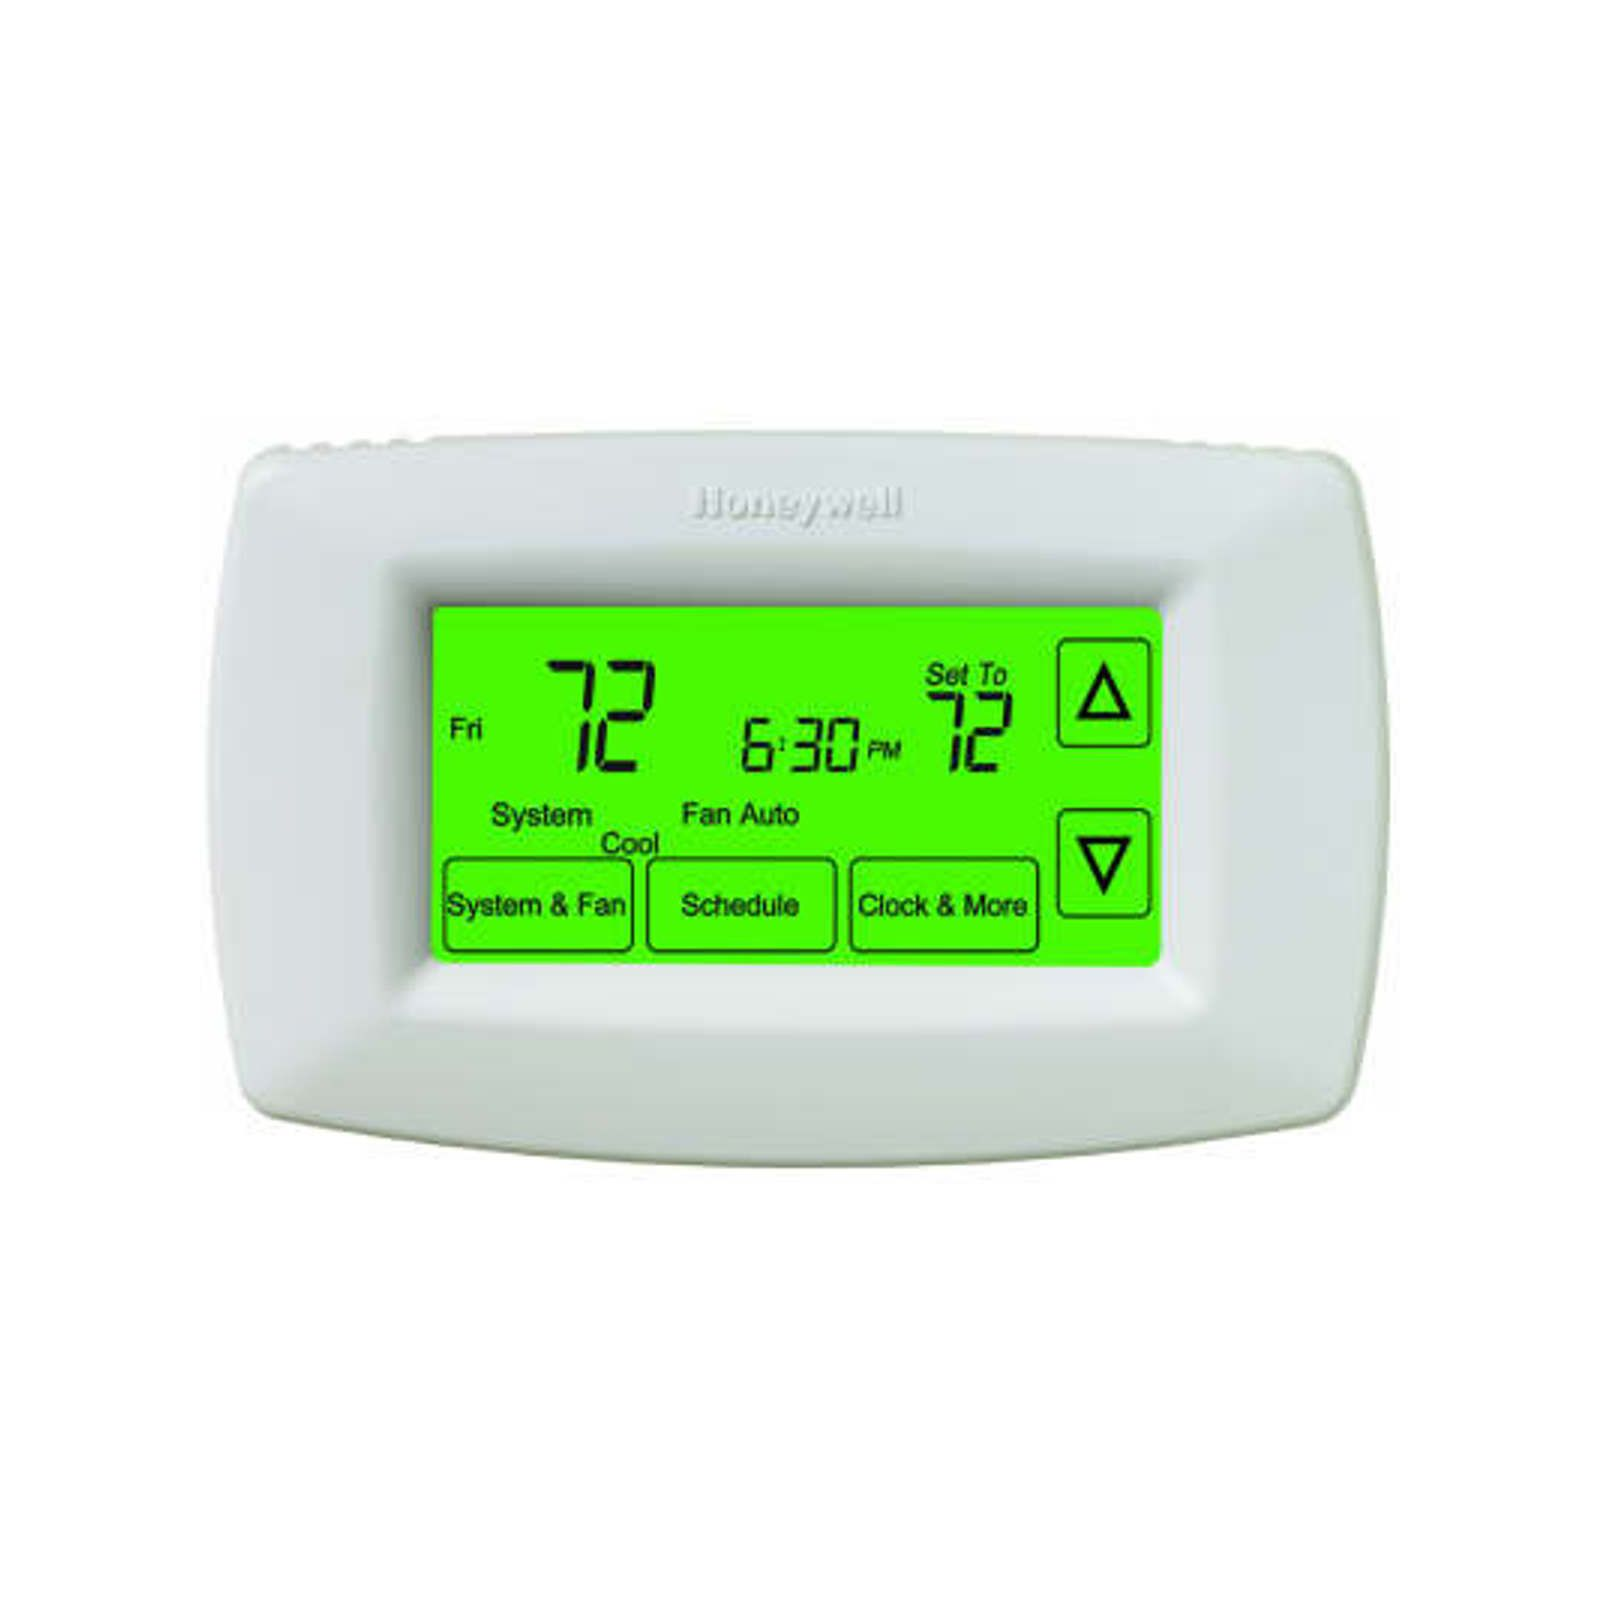 Where can you get a Honeywell 7000 thermostat manual?